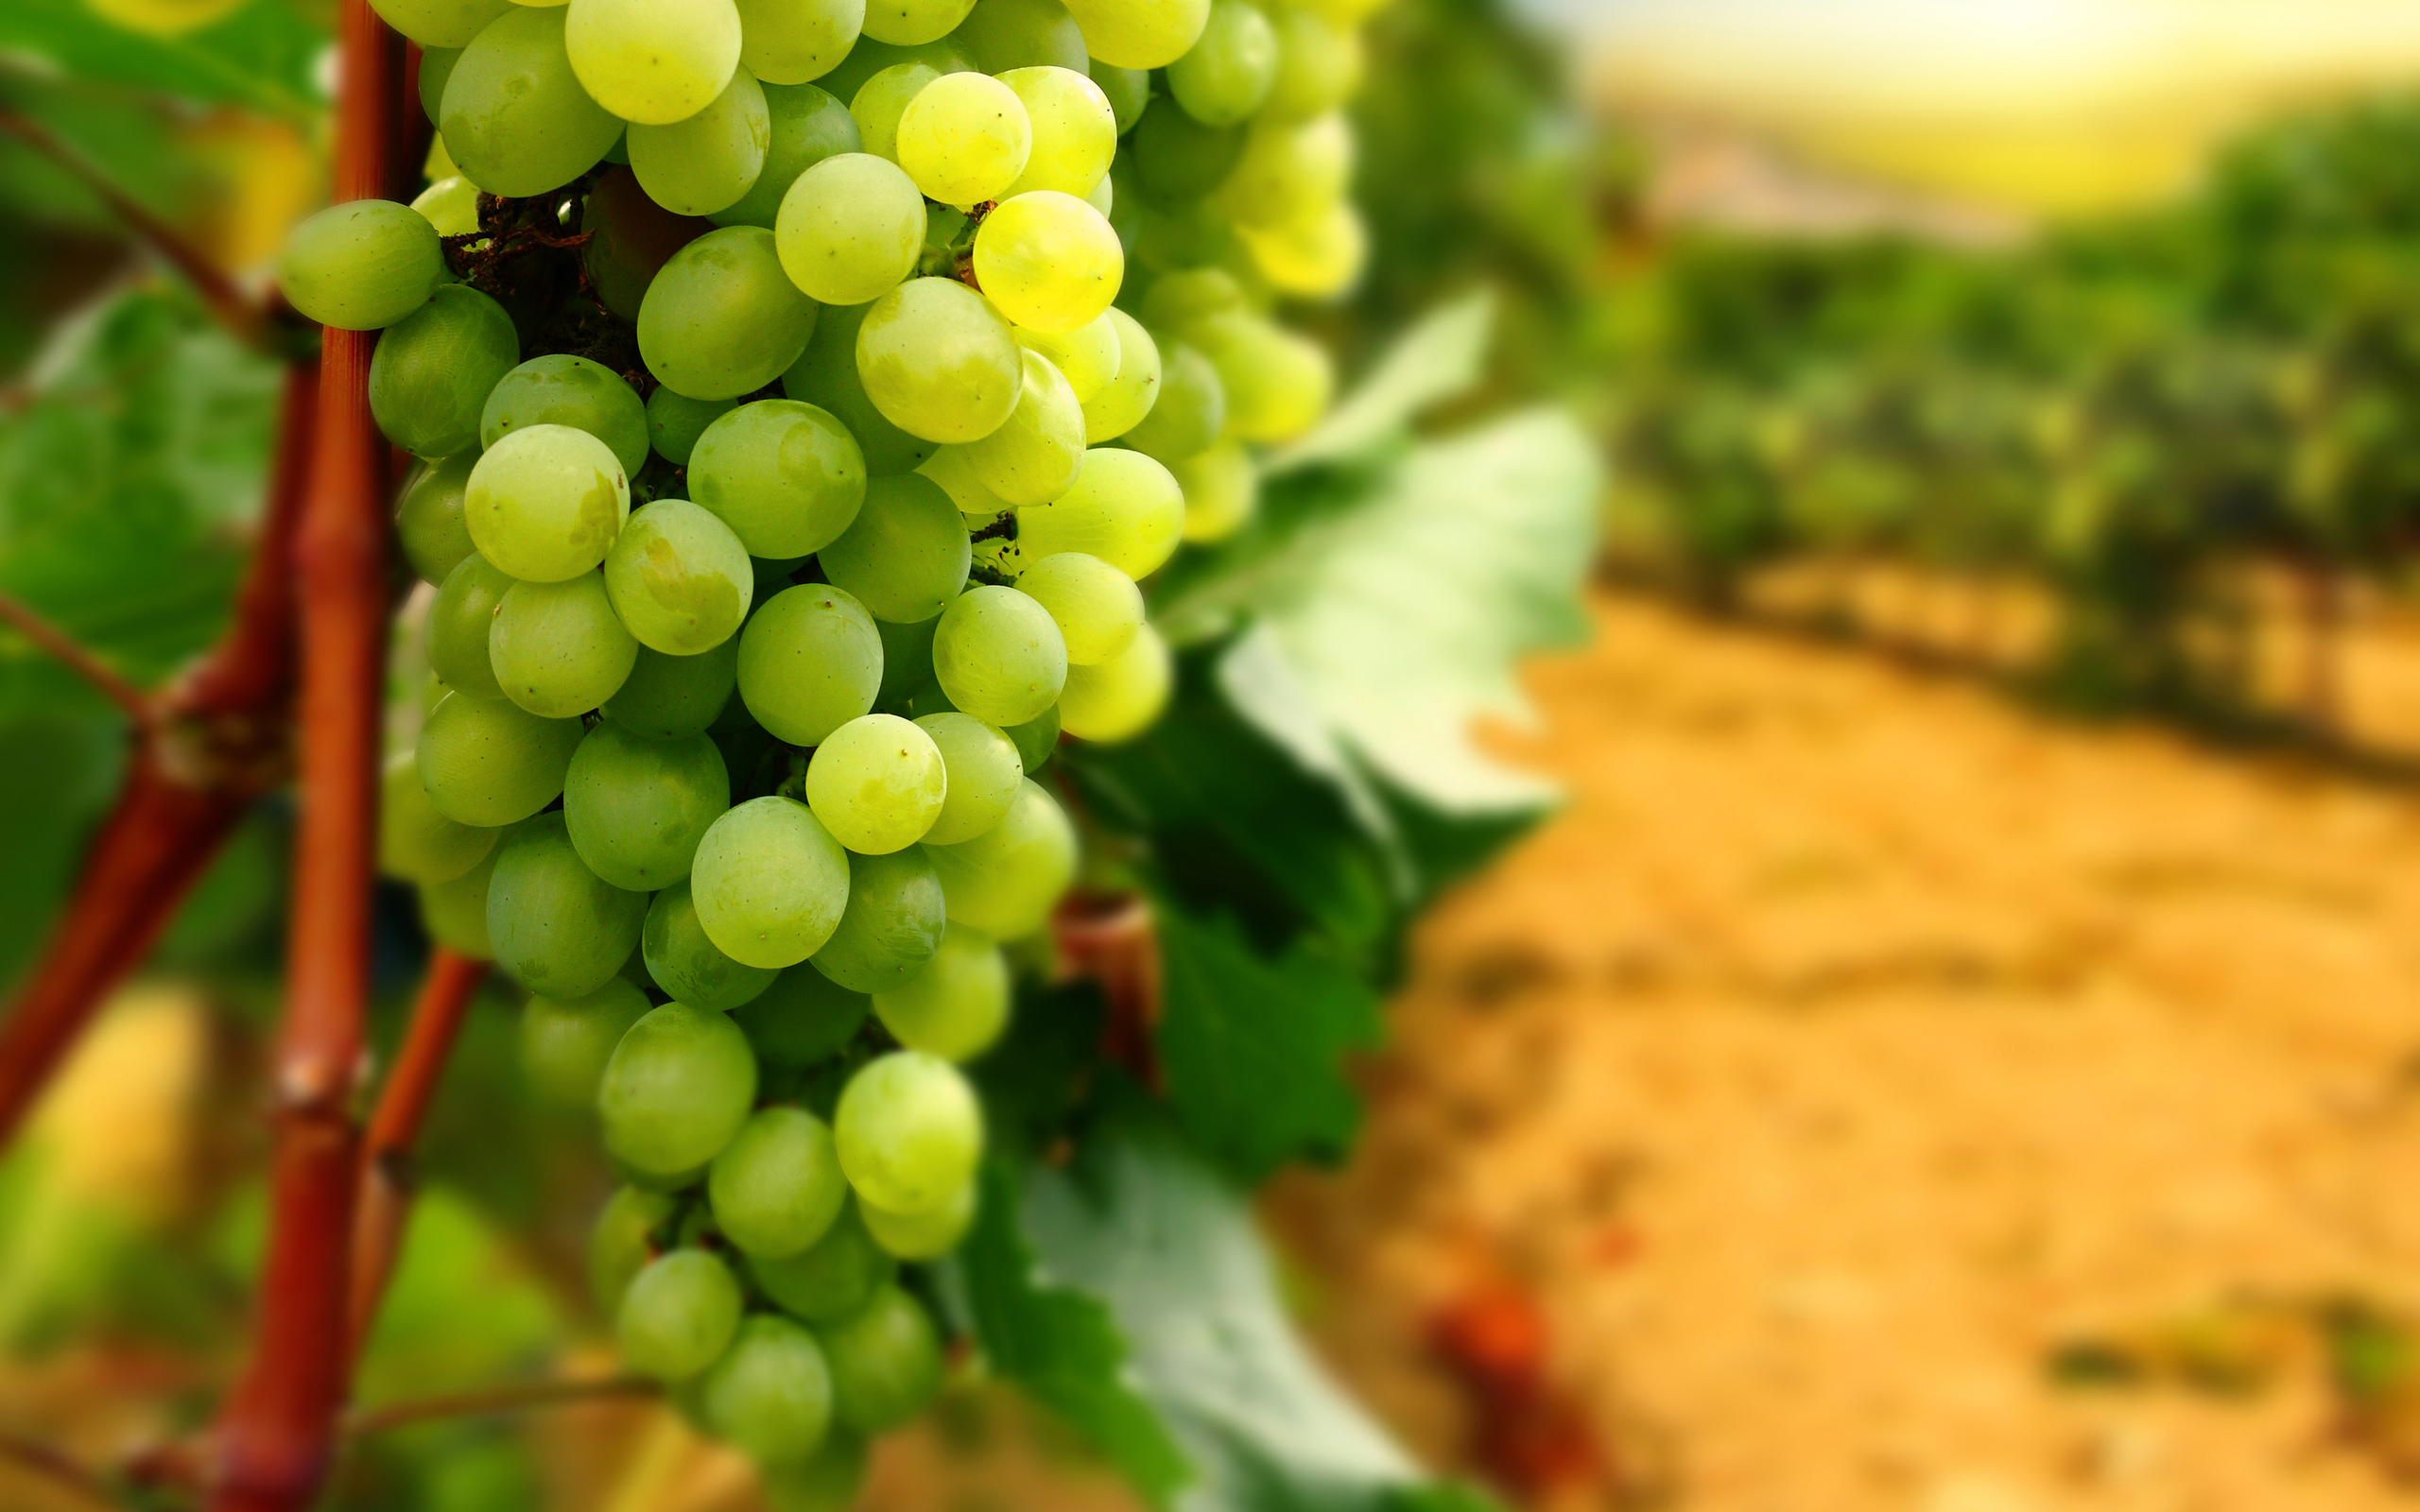 Grapes Fruit Wallpaper HD Desktop Images One HD 2560x1600